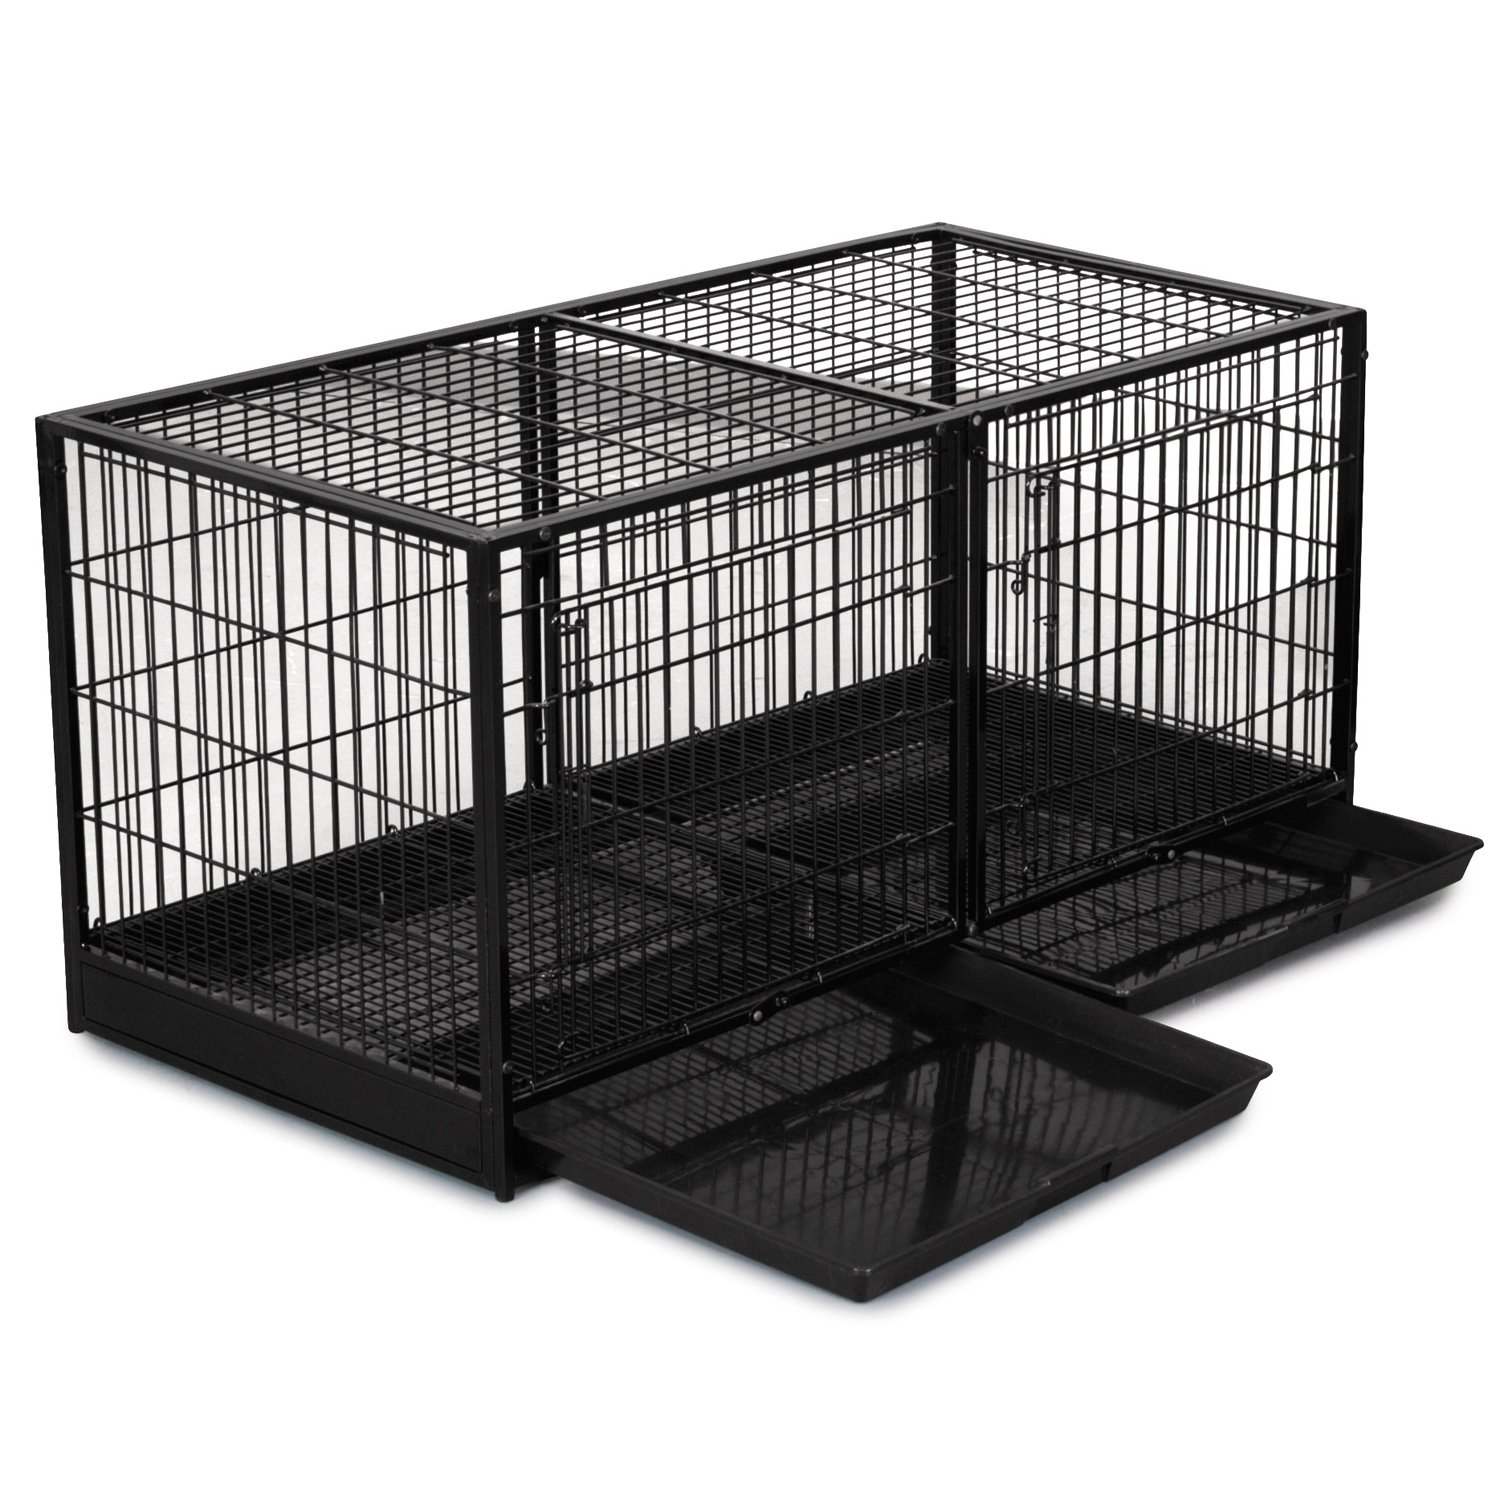 Pro Select Steel Modular Cage with Plastic Tray, Black by Pro Select